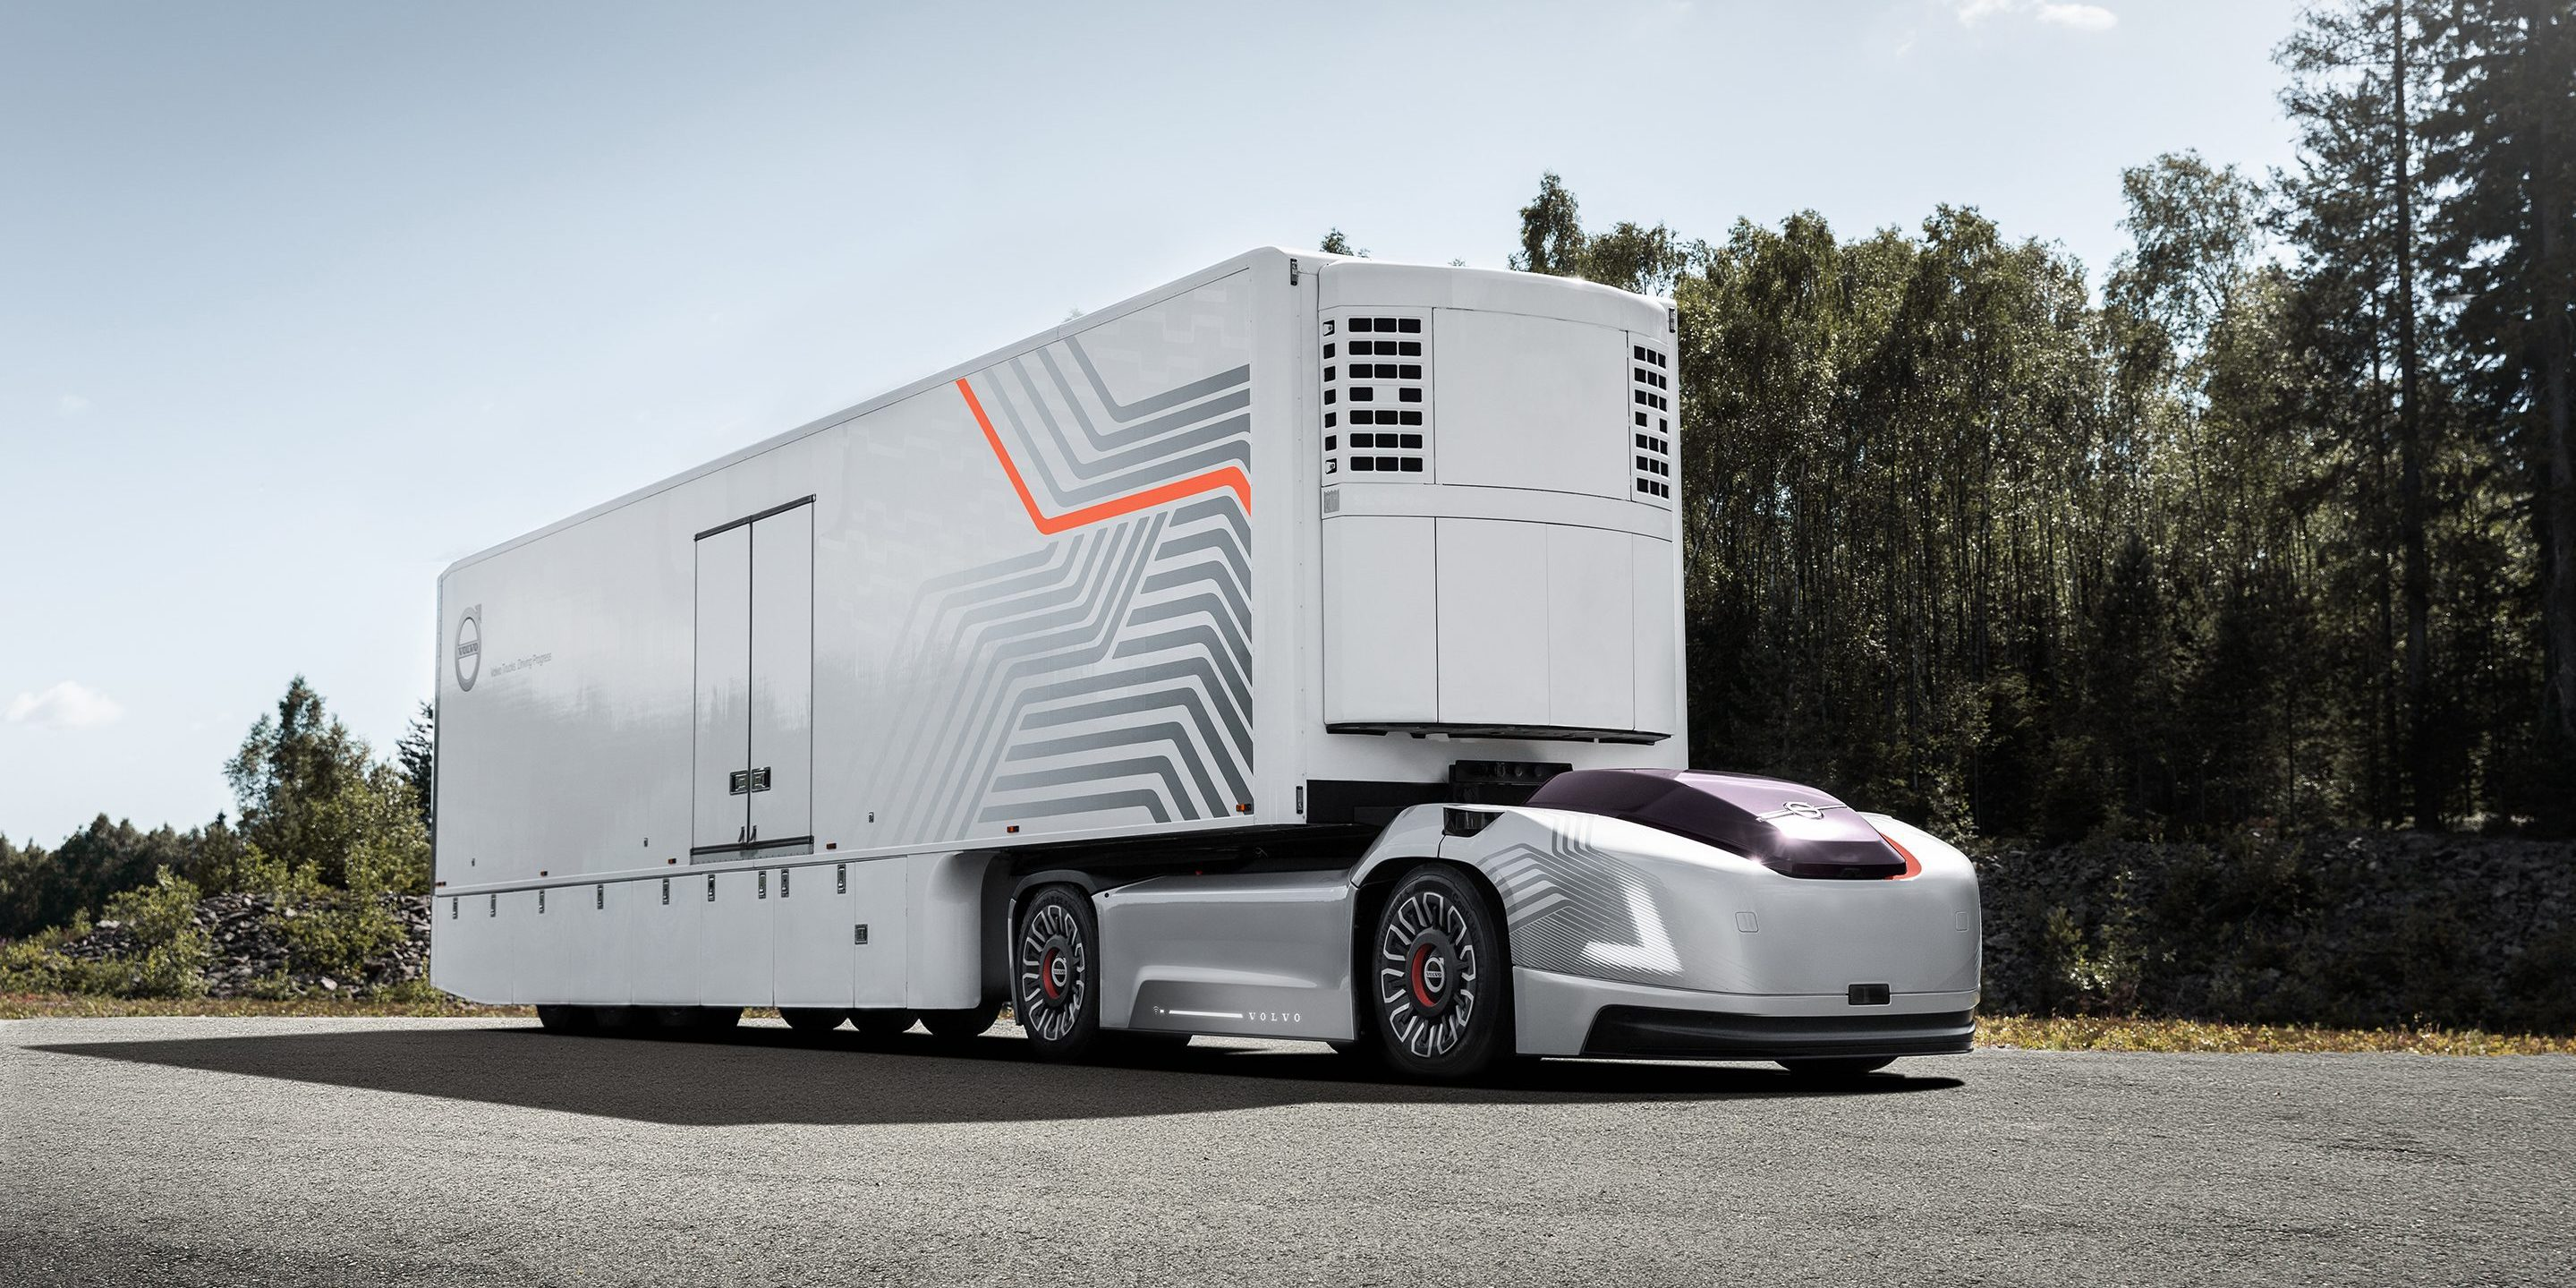 Volvo introduced a self-powered electric truck without the cab